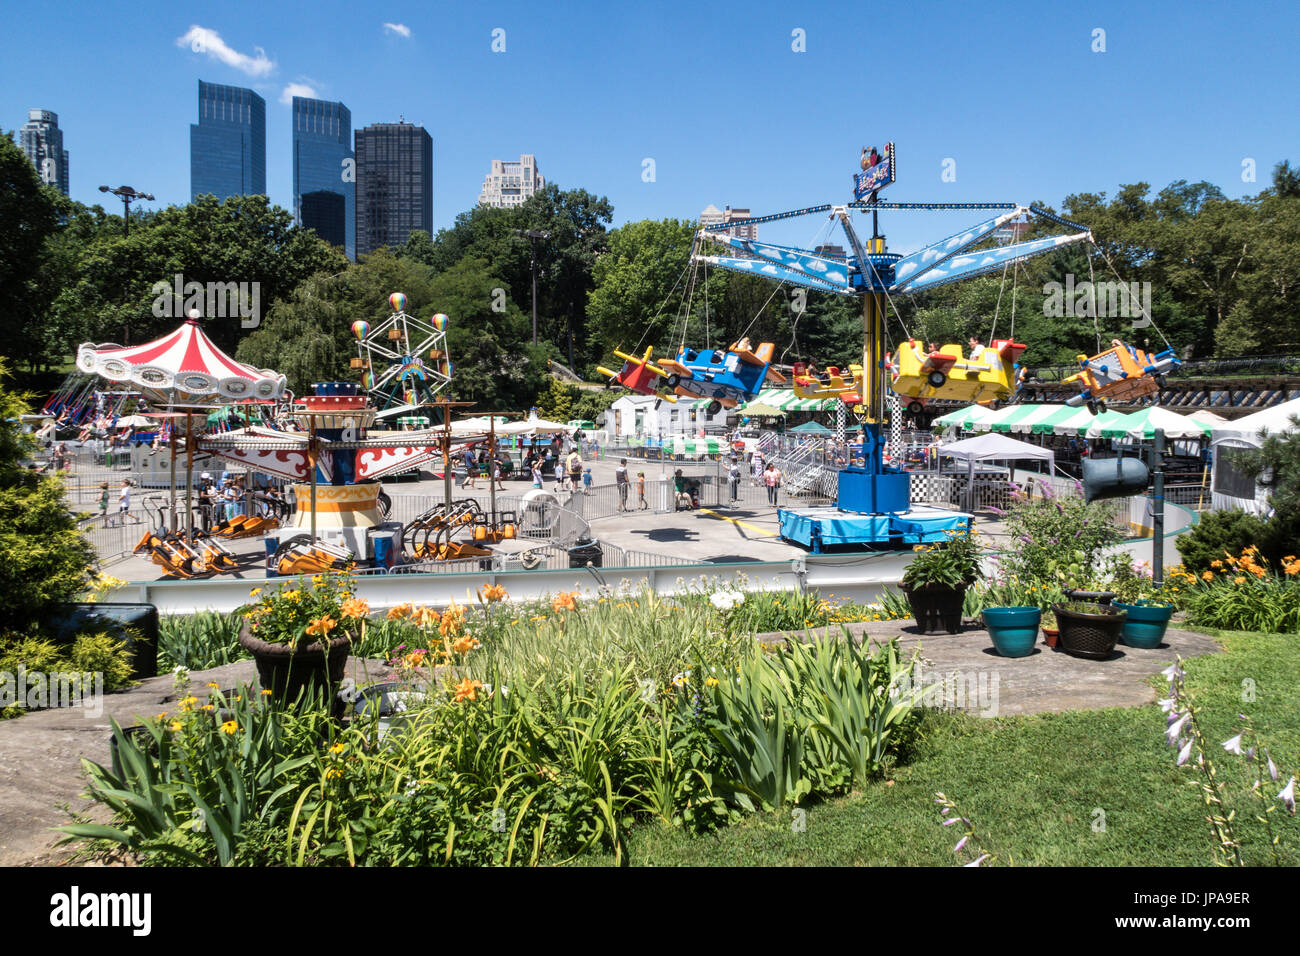 Victorian Gardens, Carnival Rides In Central Park With The Manhattan  Skyline In Background, NYC, USA